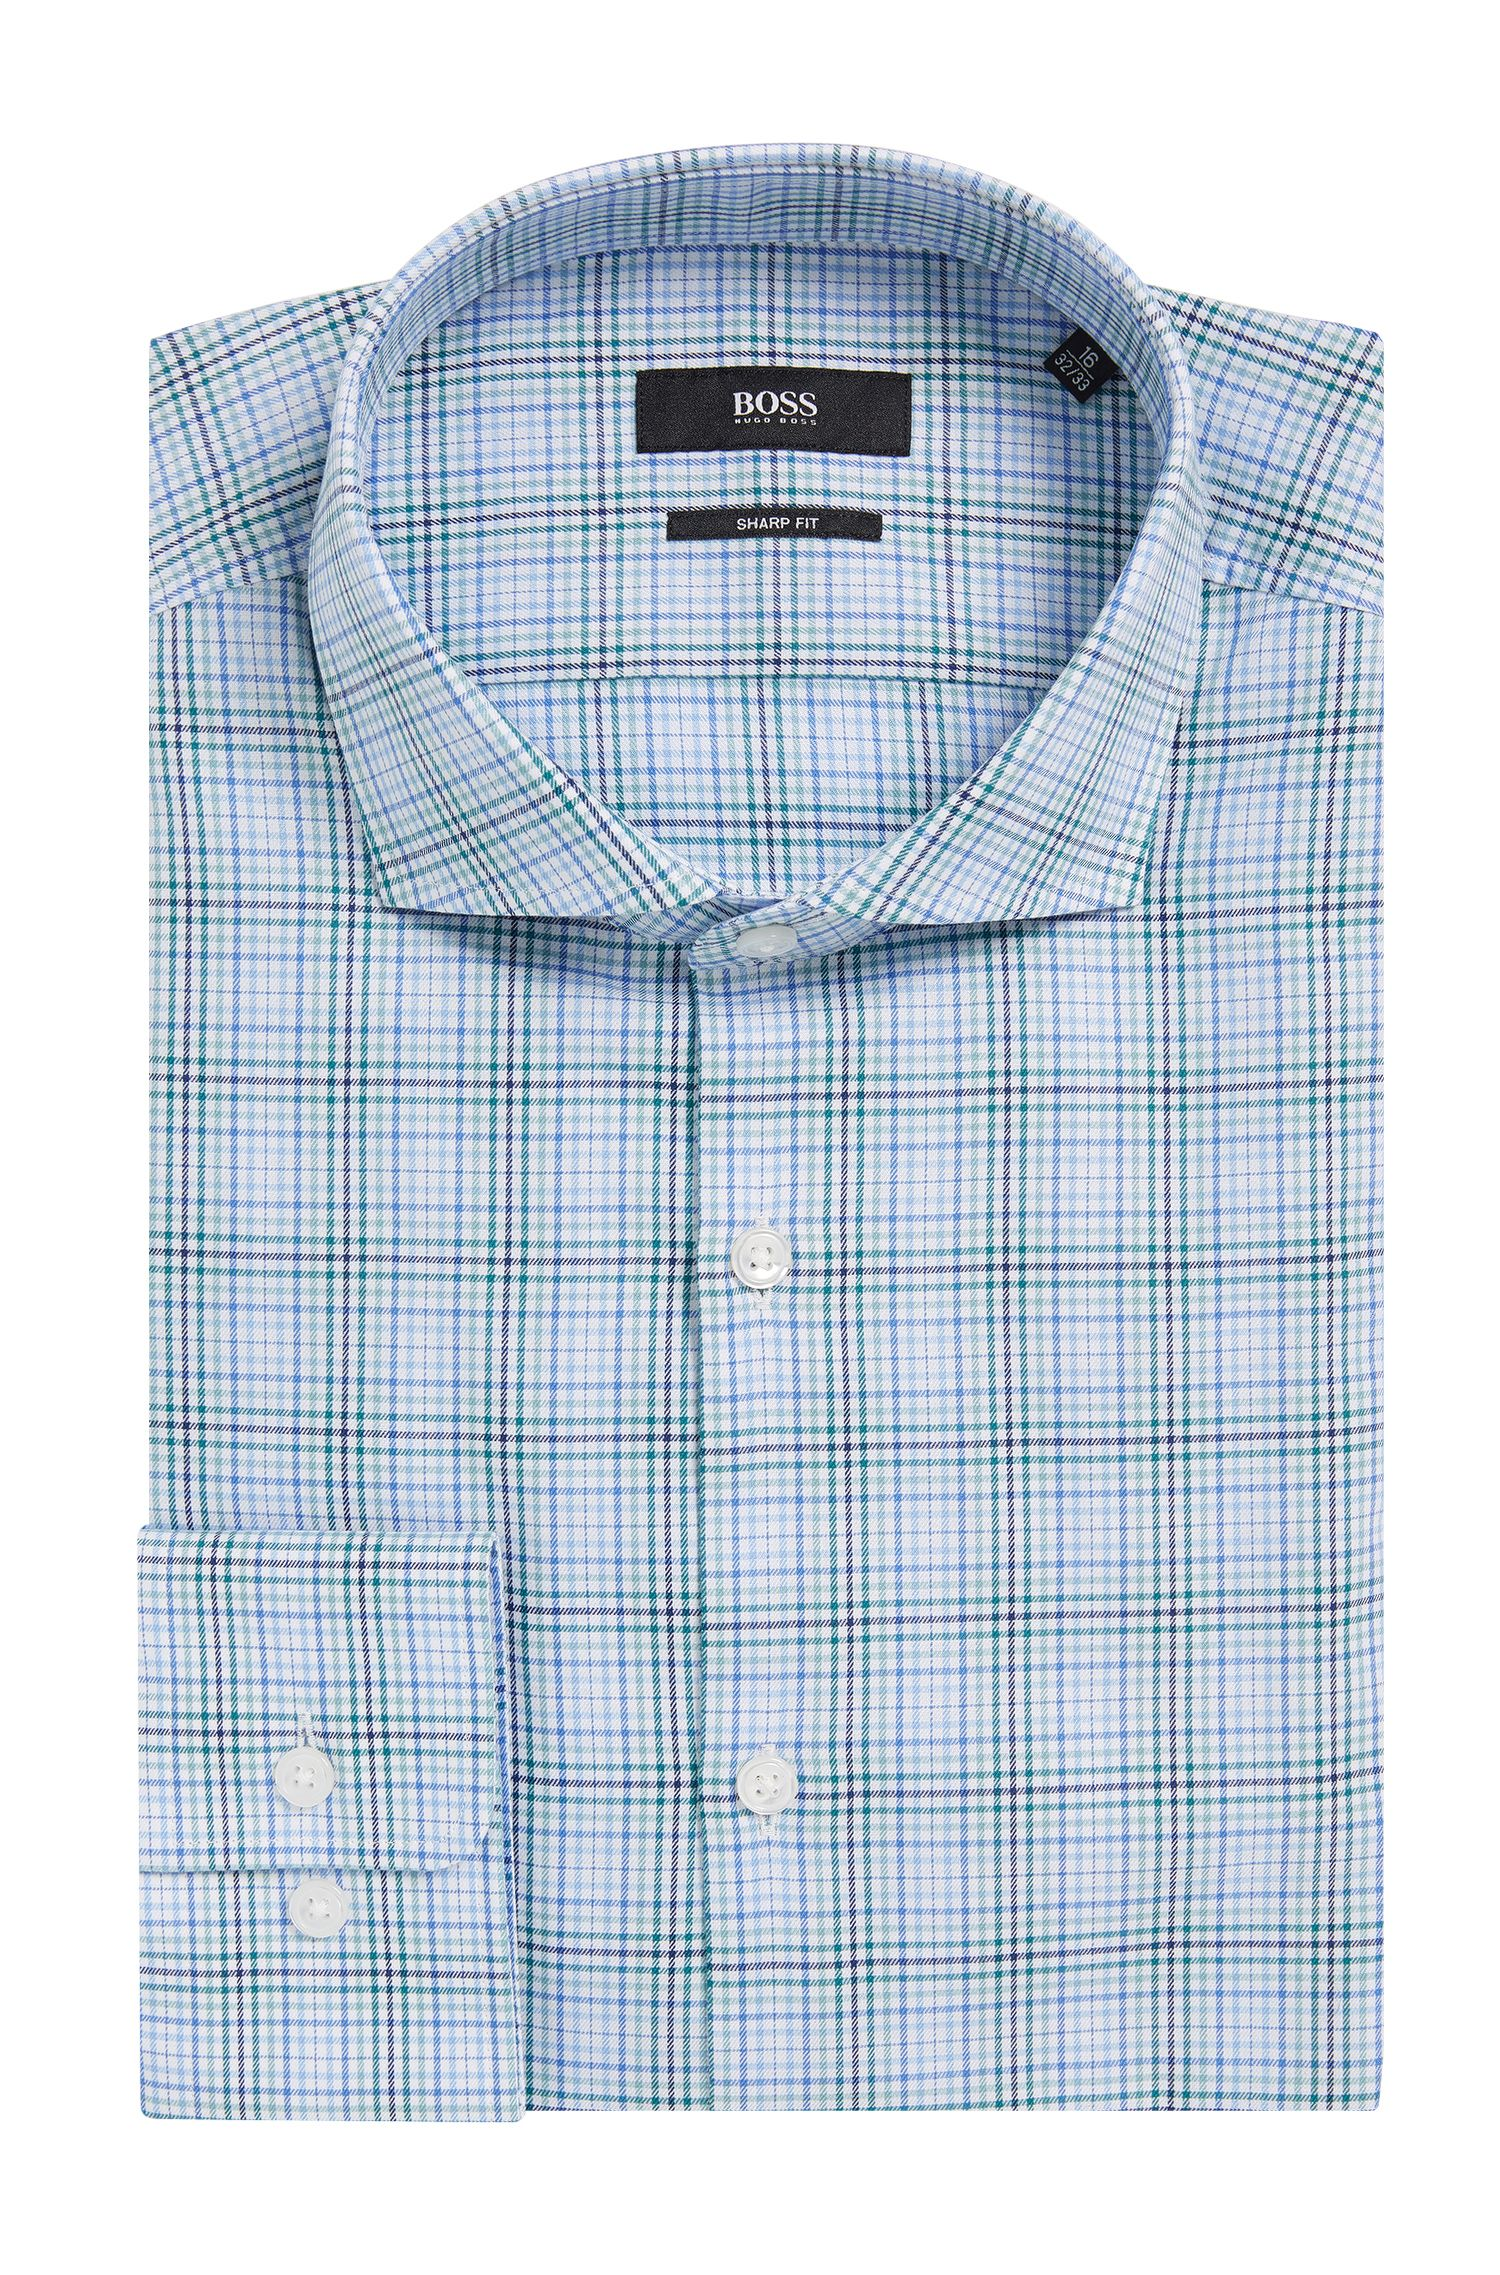 Plaid Cotton Dress Shirt, Sharp Fit | Mark US